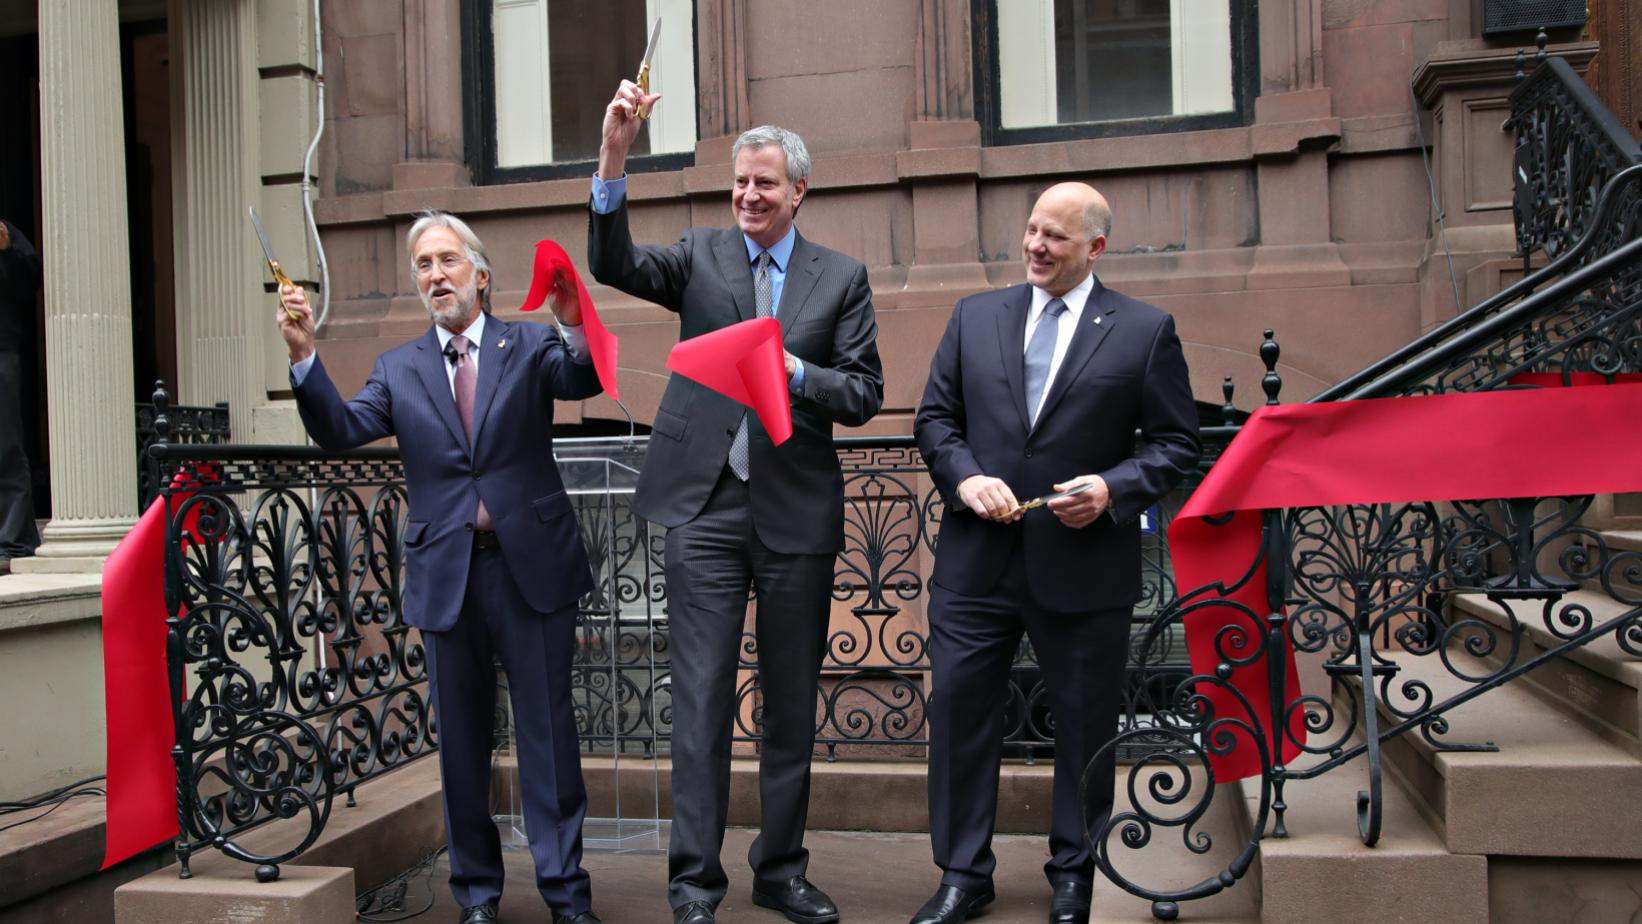 Neil Portnow, Mayor Bill de Blasio and John Poppo in New York